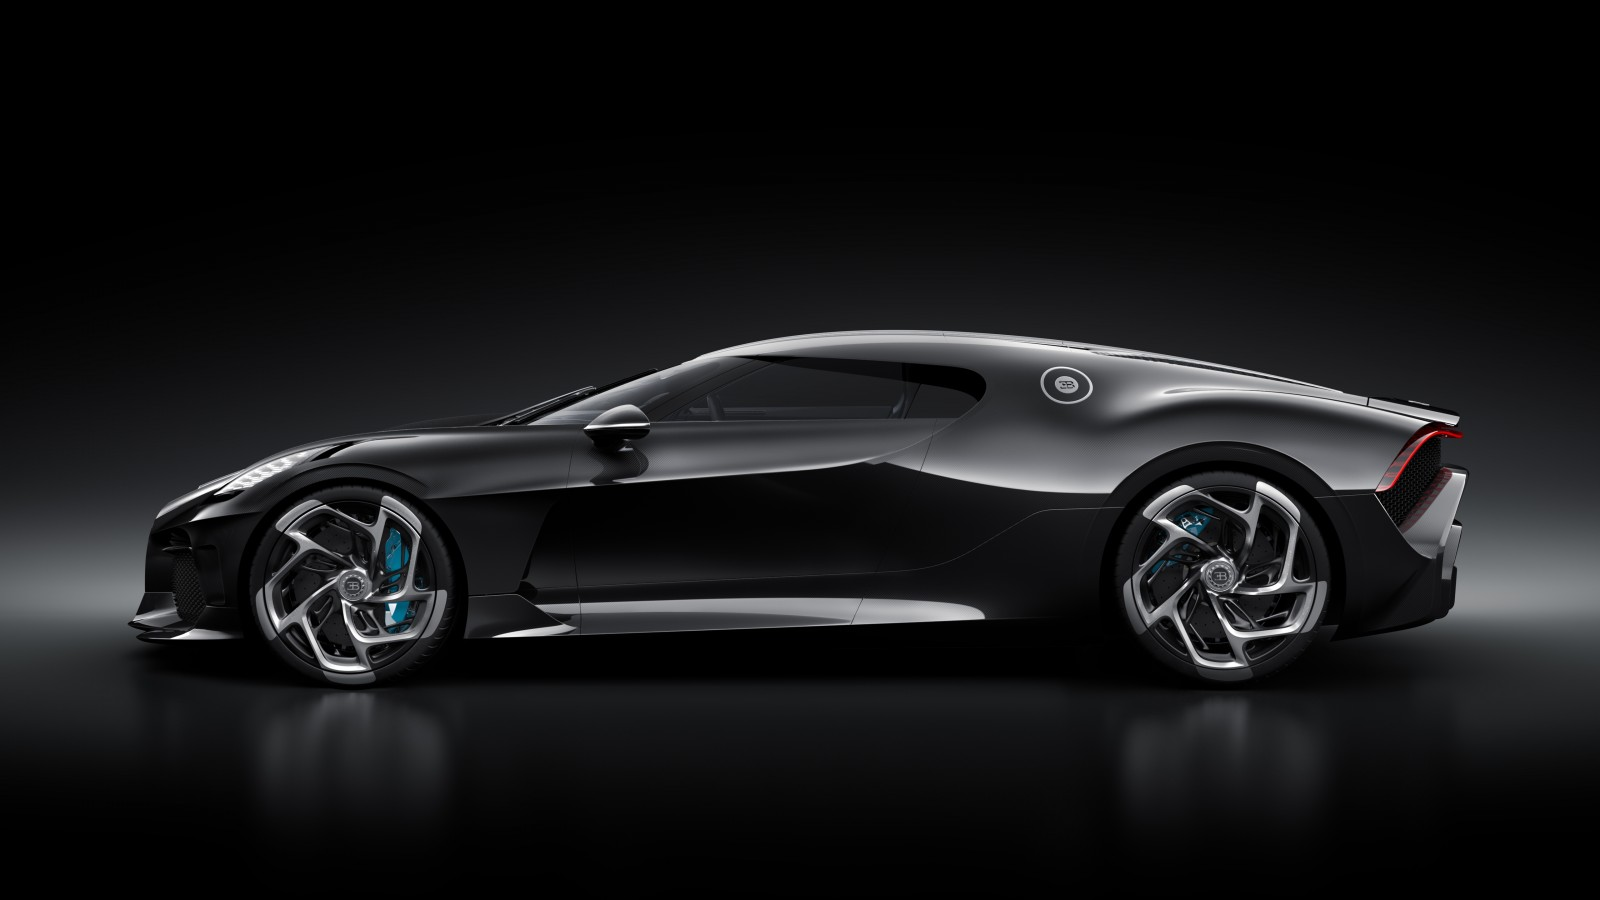 High Quality Car Pictures And Car Wallpapers Bugatti La Voiture Noire 2019 4k 2 Wallpaper Hd Car